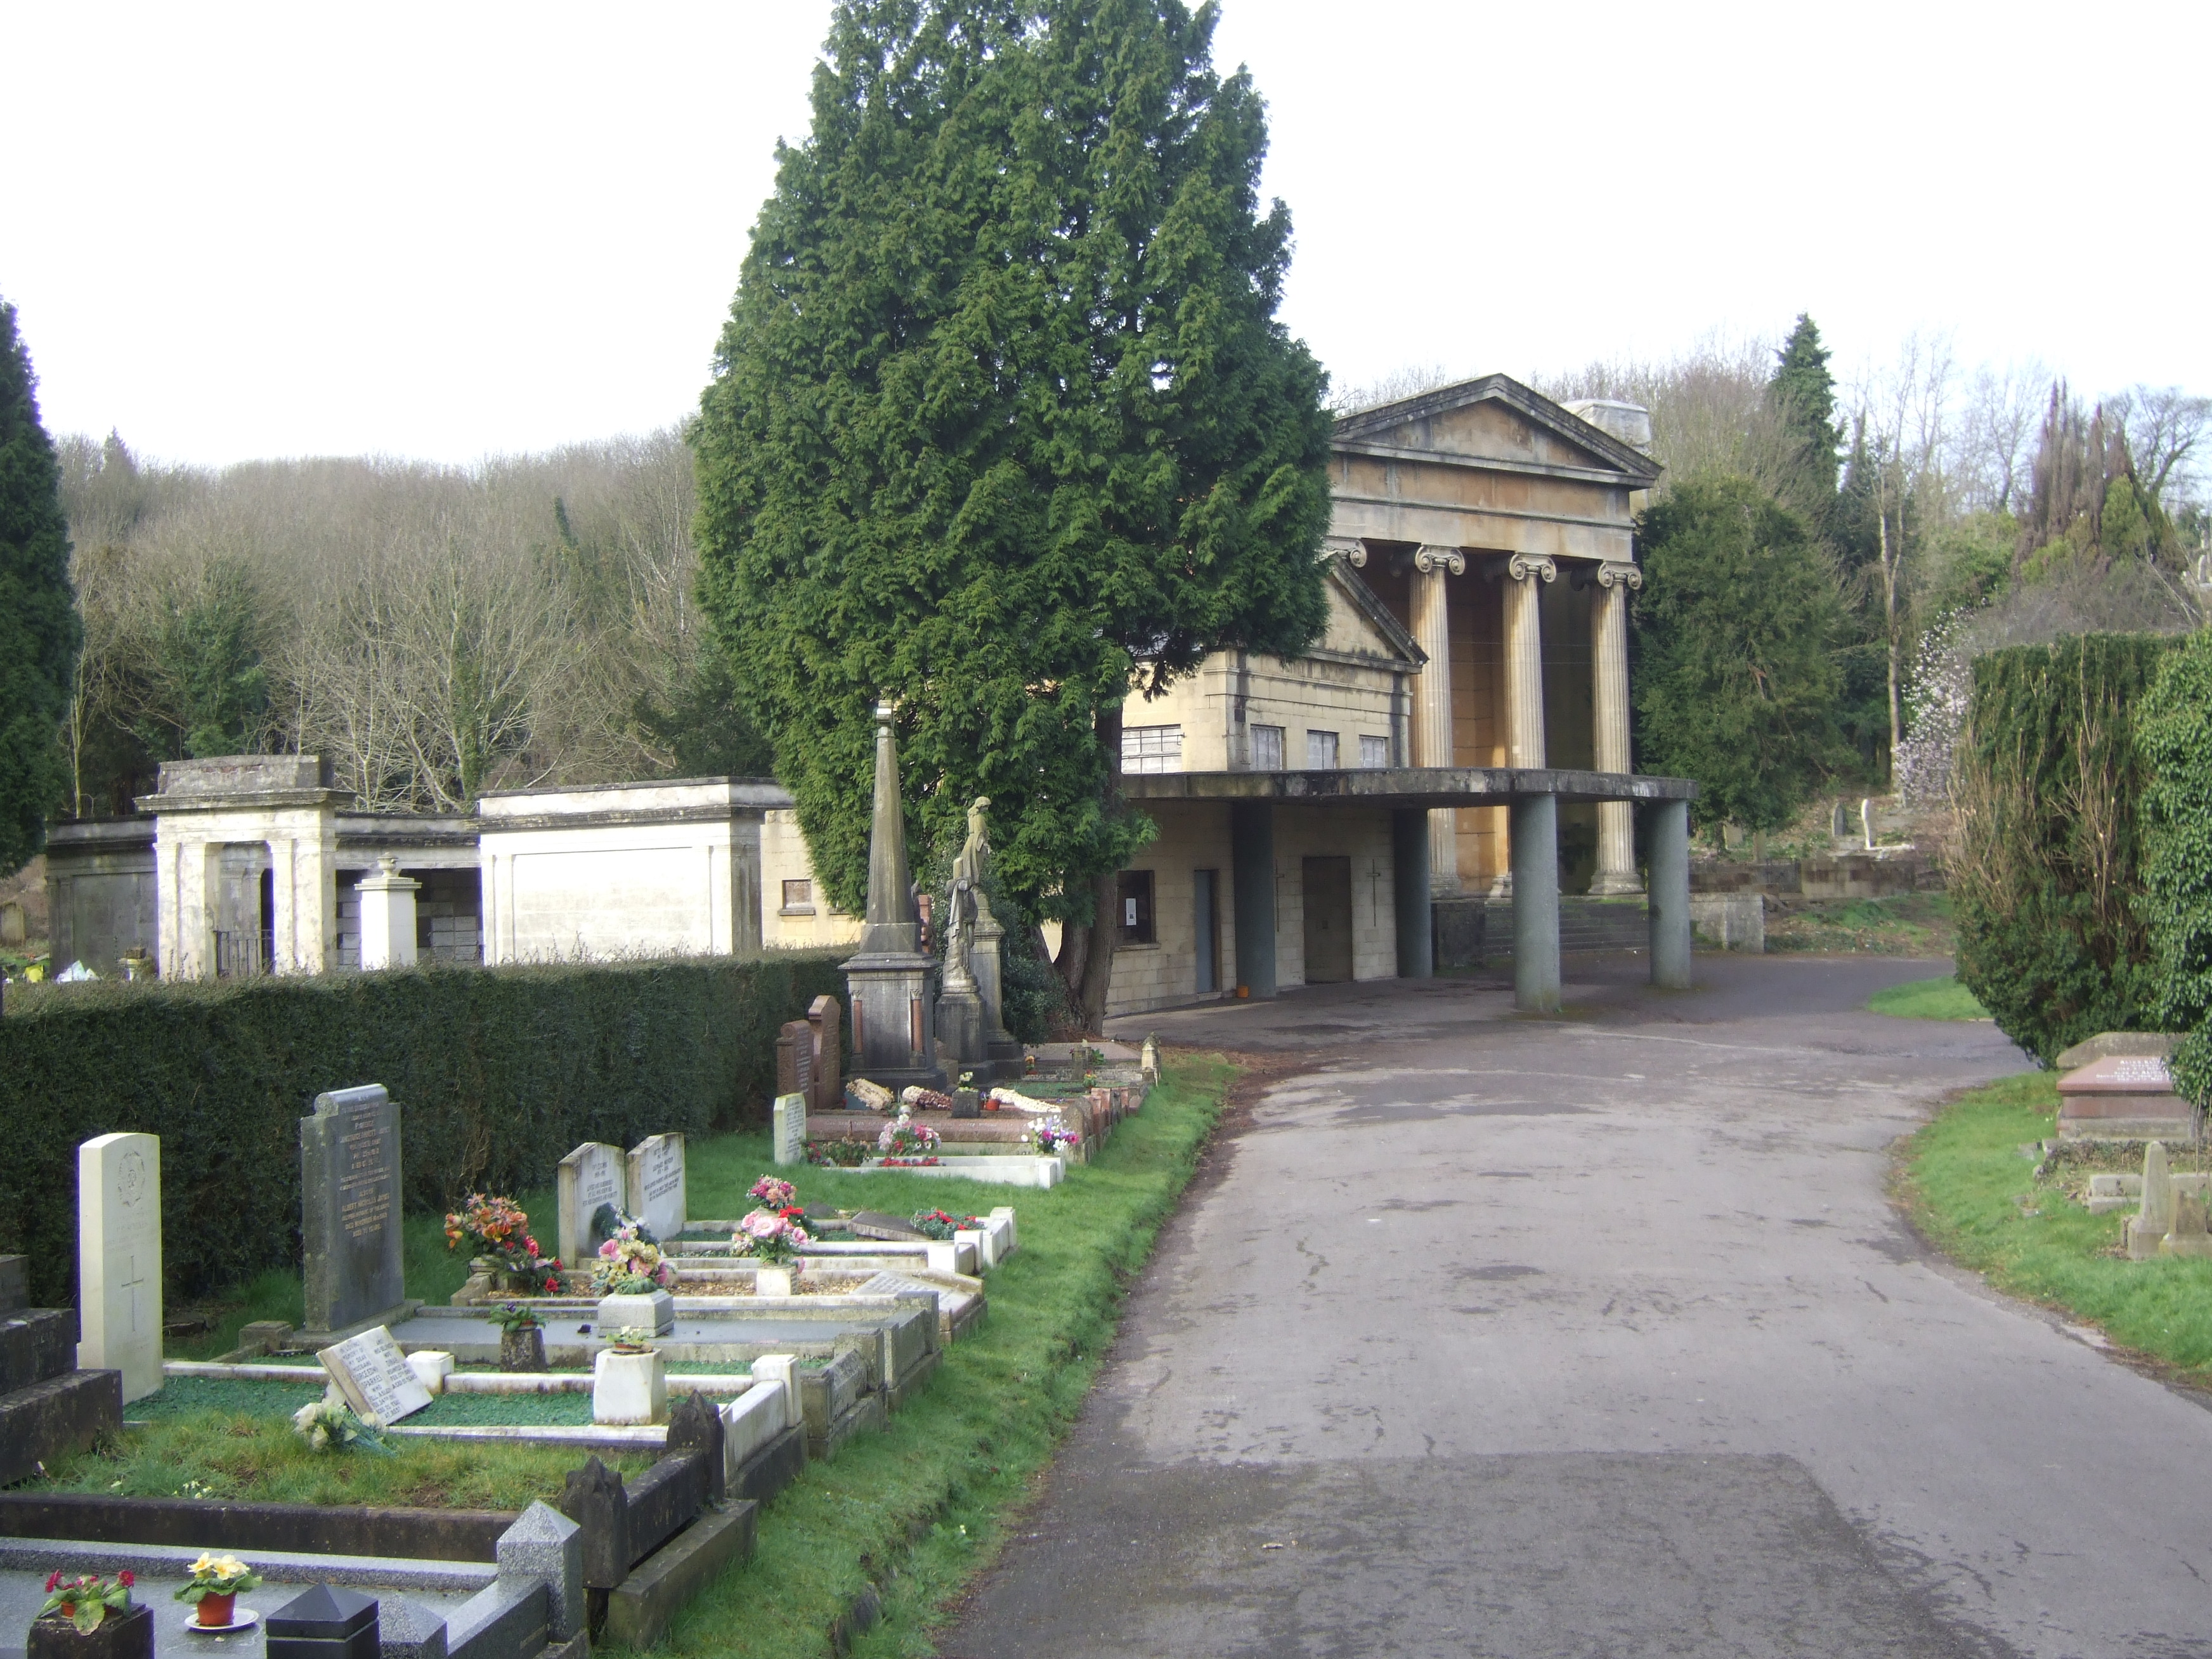 Crematorium chapel with classical columns surrounded by graves and large trees.